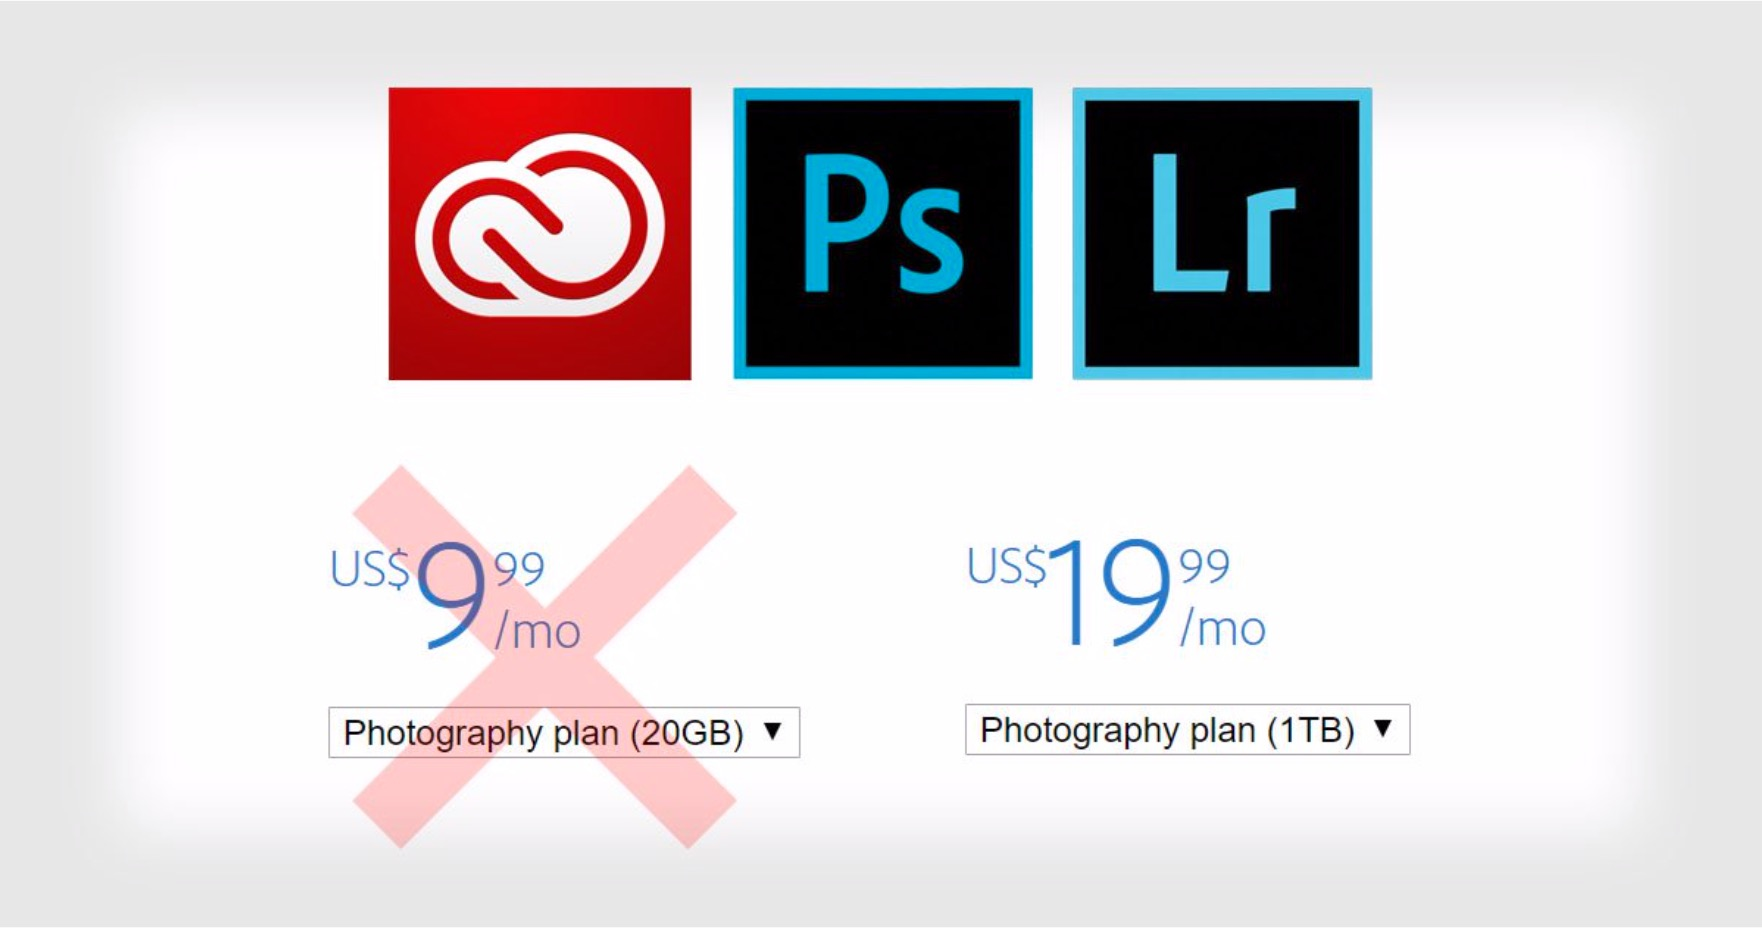 Adobe Price Increase on LightRoom & Photoshop Takes Effect